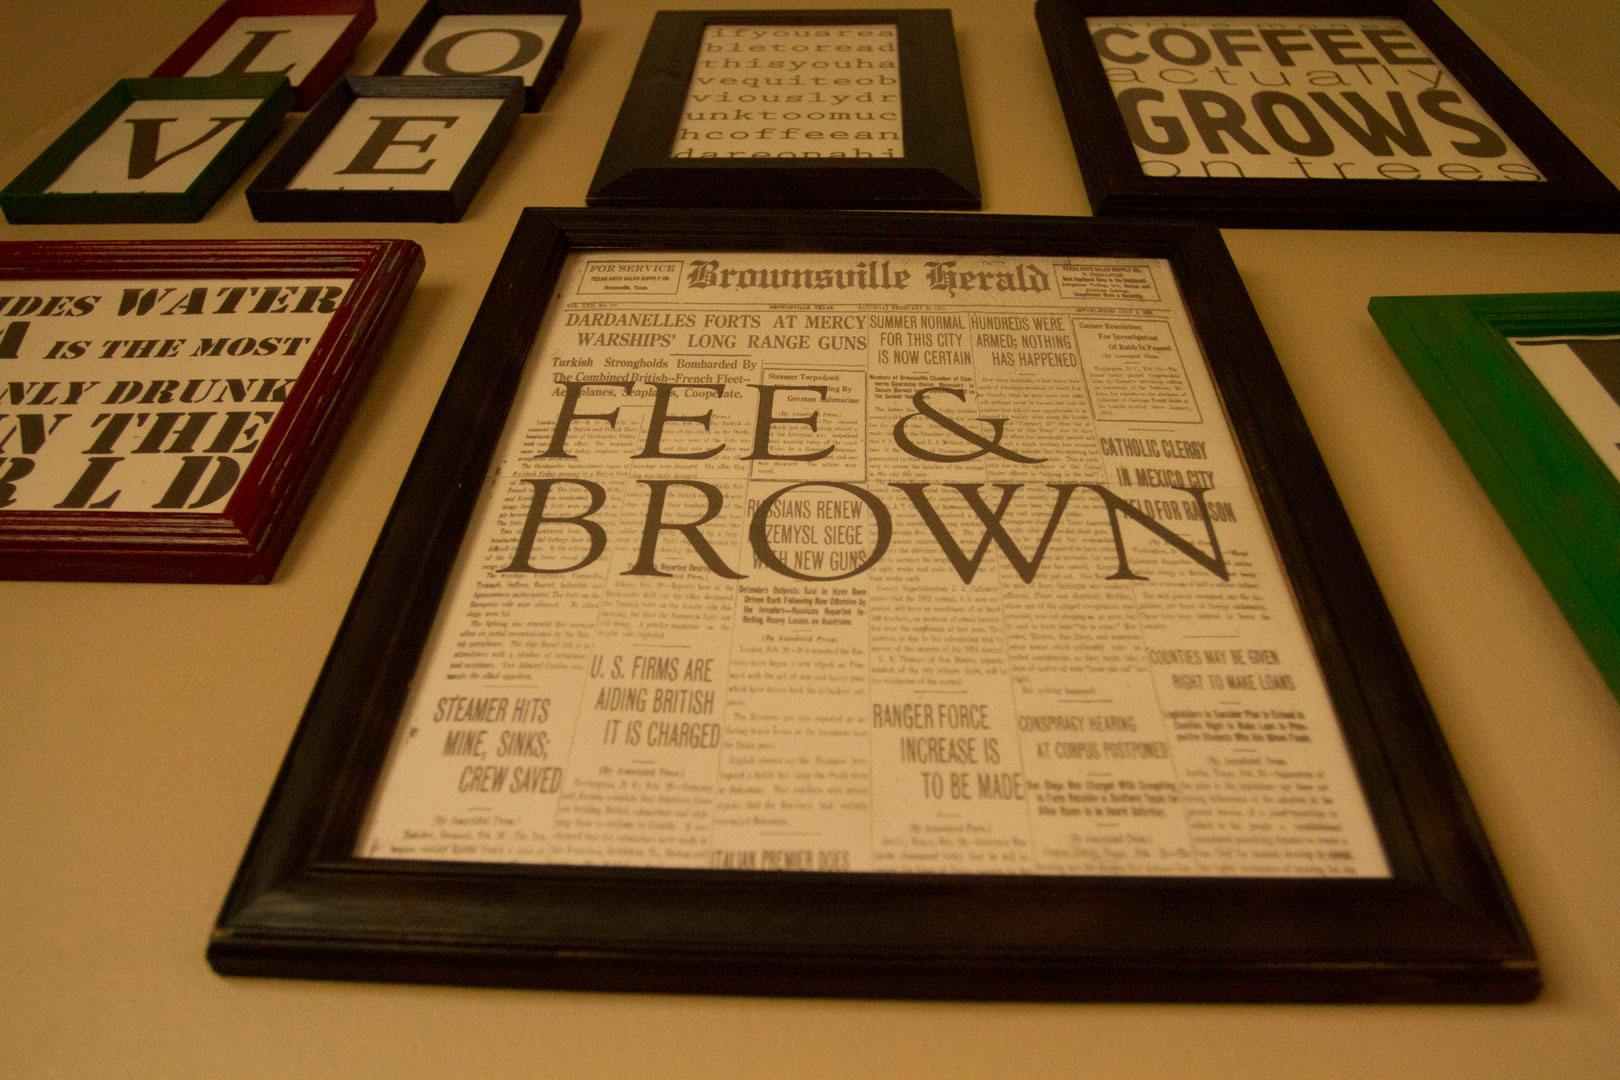 Fee & Brown